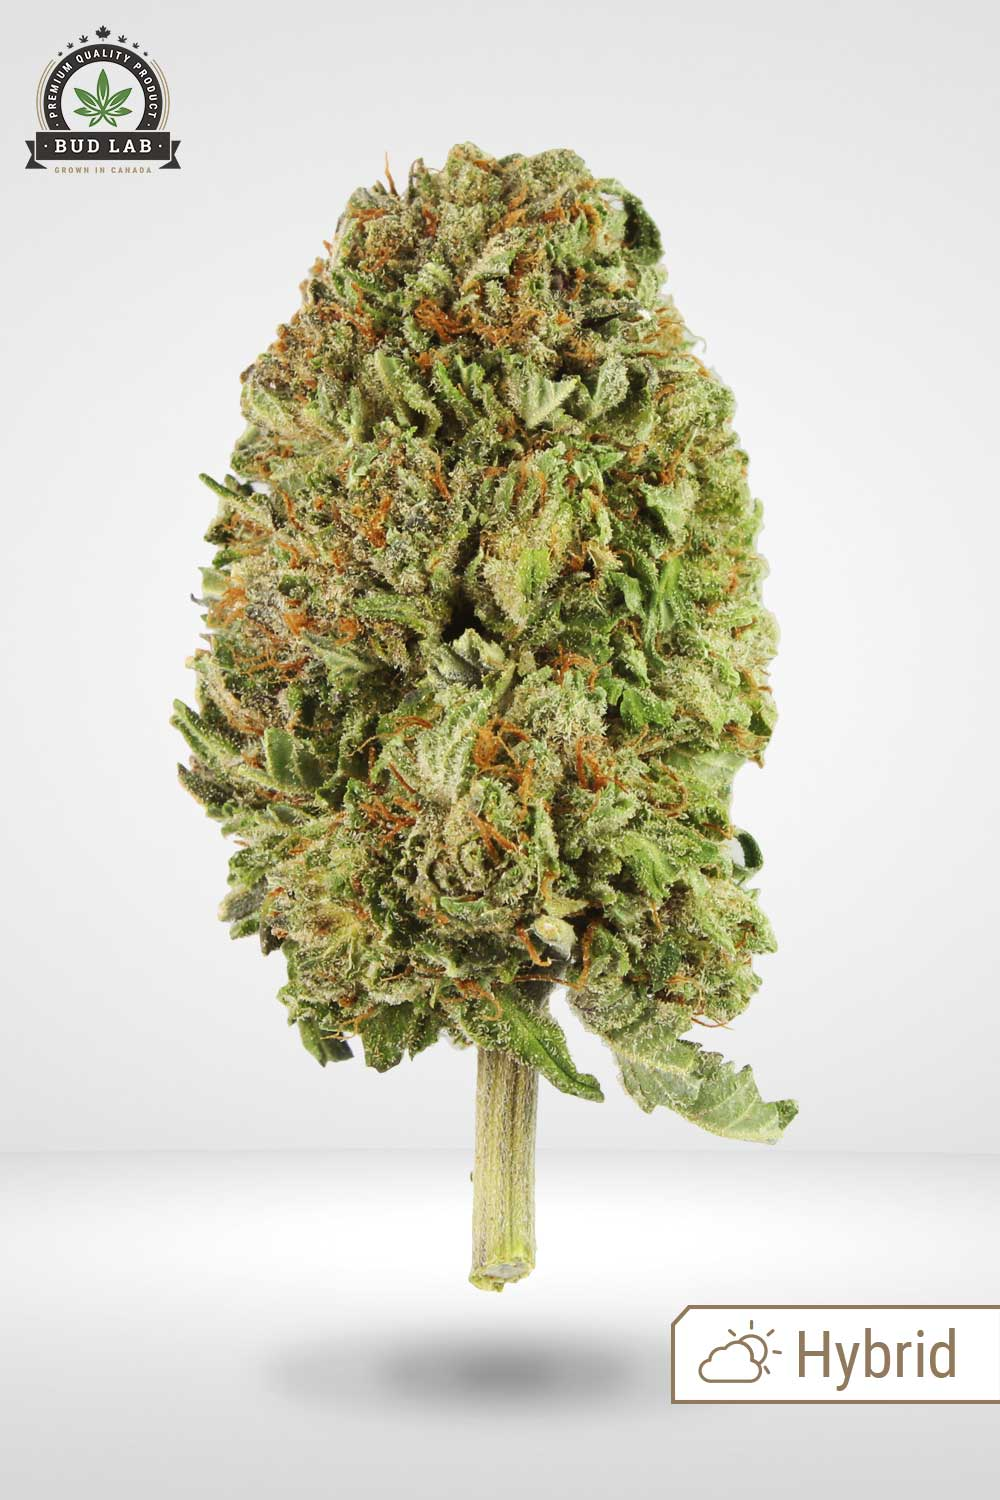 Pink Bubba Weed Flower Bud Lab display image